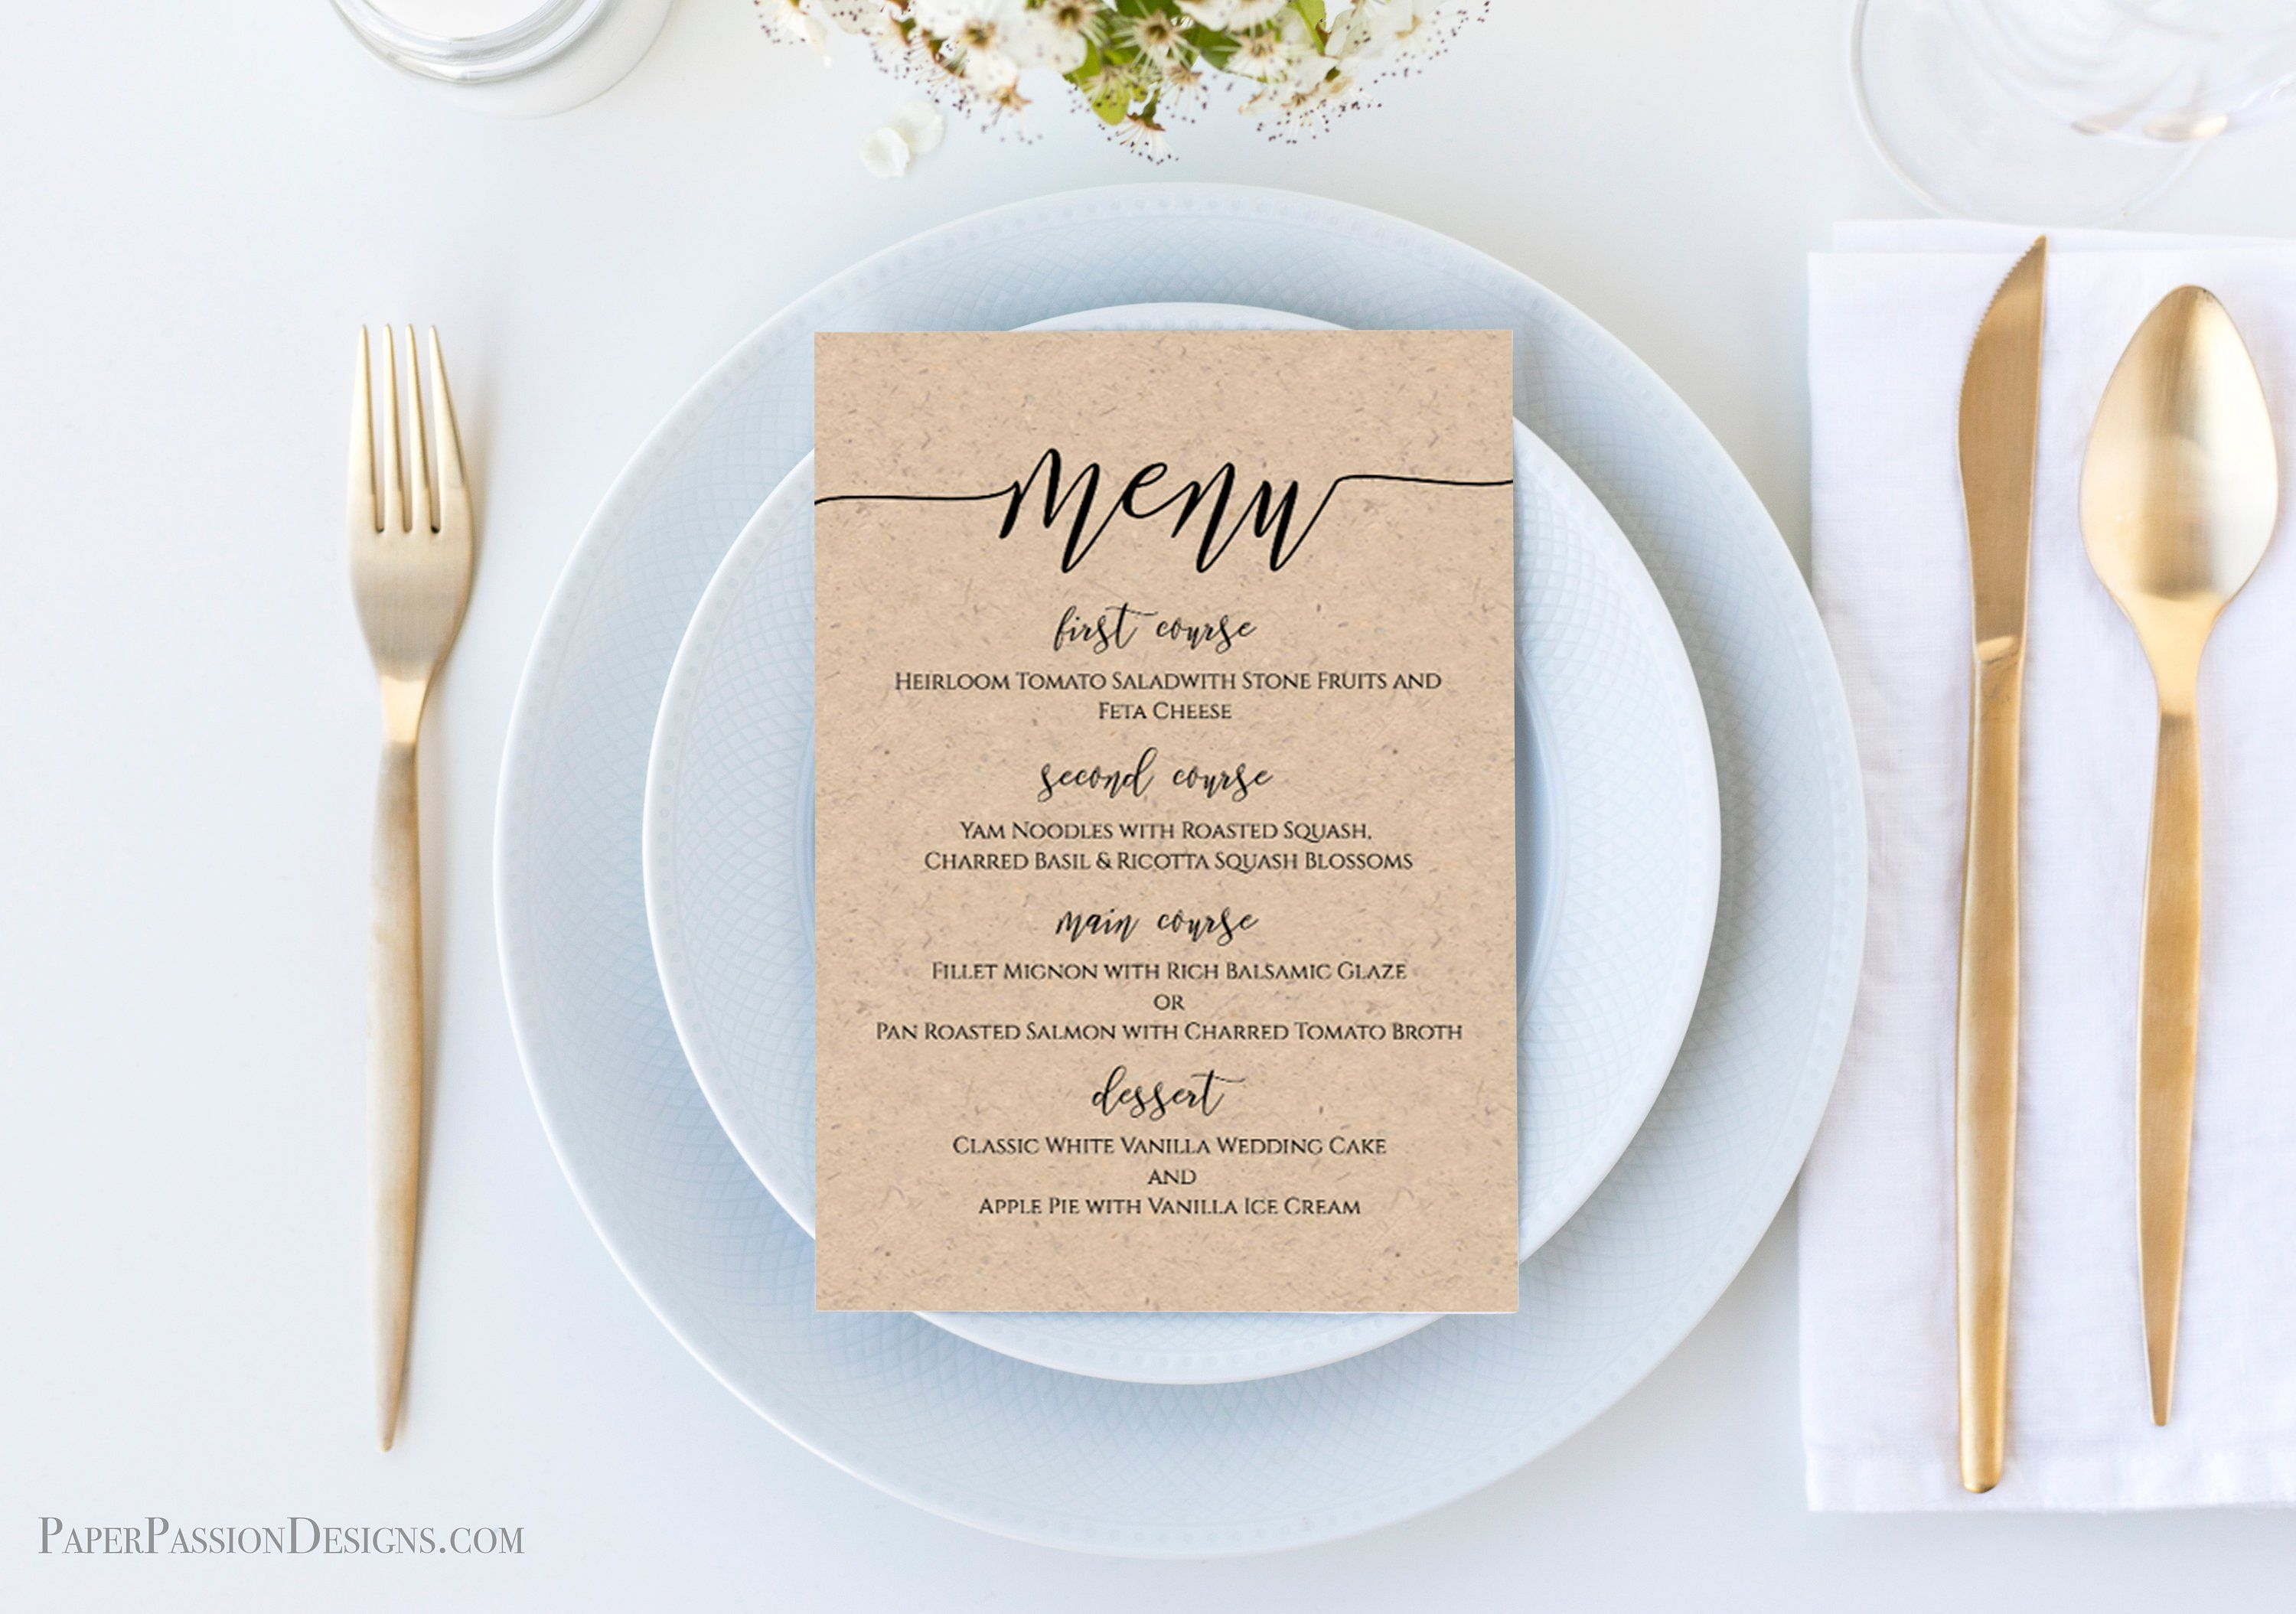 Modern Rustic Wedding Menu Template, Script Font Menu Card, 100% Editable, Templett PPW0550 #weddingmenutemplate Modern Rustic Wedding Menu Template, Script Font Menu Card, 100% Editable, Templett PPW0550 #weddingmenutemplate